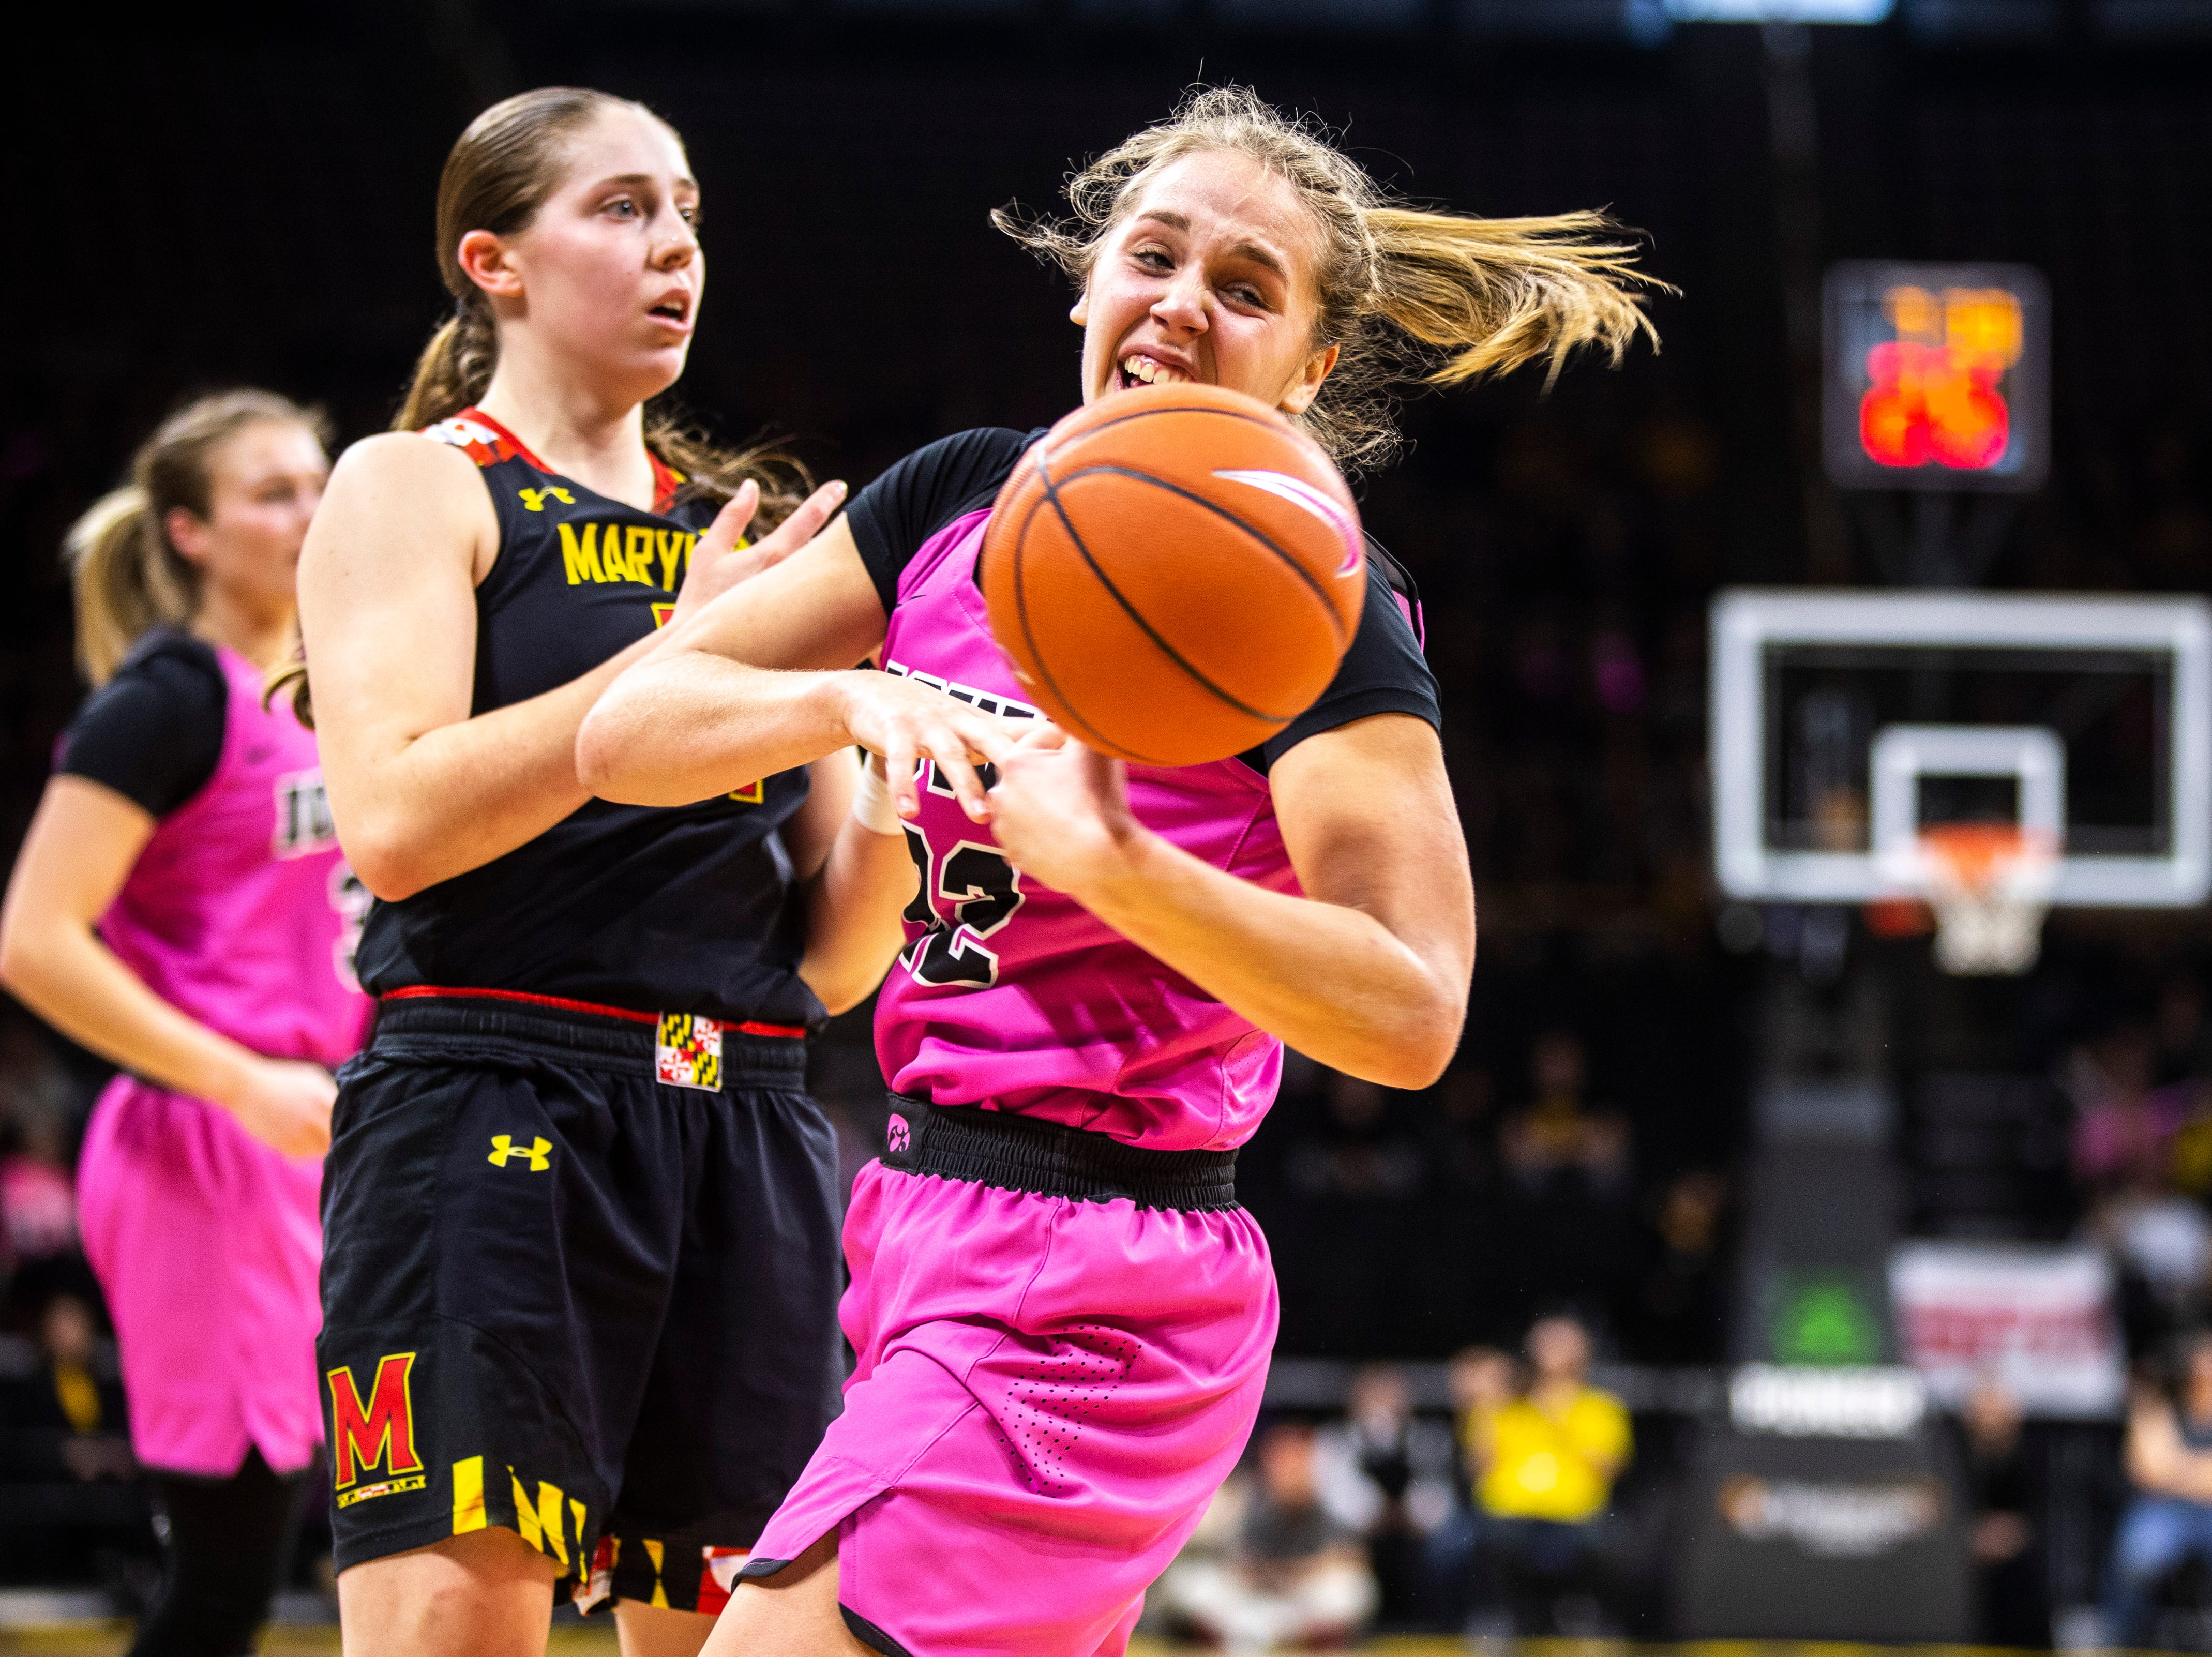 Iowa guard Kathleen Doyle (22) battles Maryland guard Taylor Mikesell, left, for a jump ball during a NCAA Big Ten Conference women's basketball game on Sunday, Feb. 17, 2019 at Carver-Hawkeye Arena in Iowa City, Iowa.